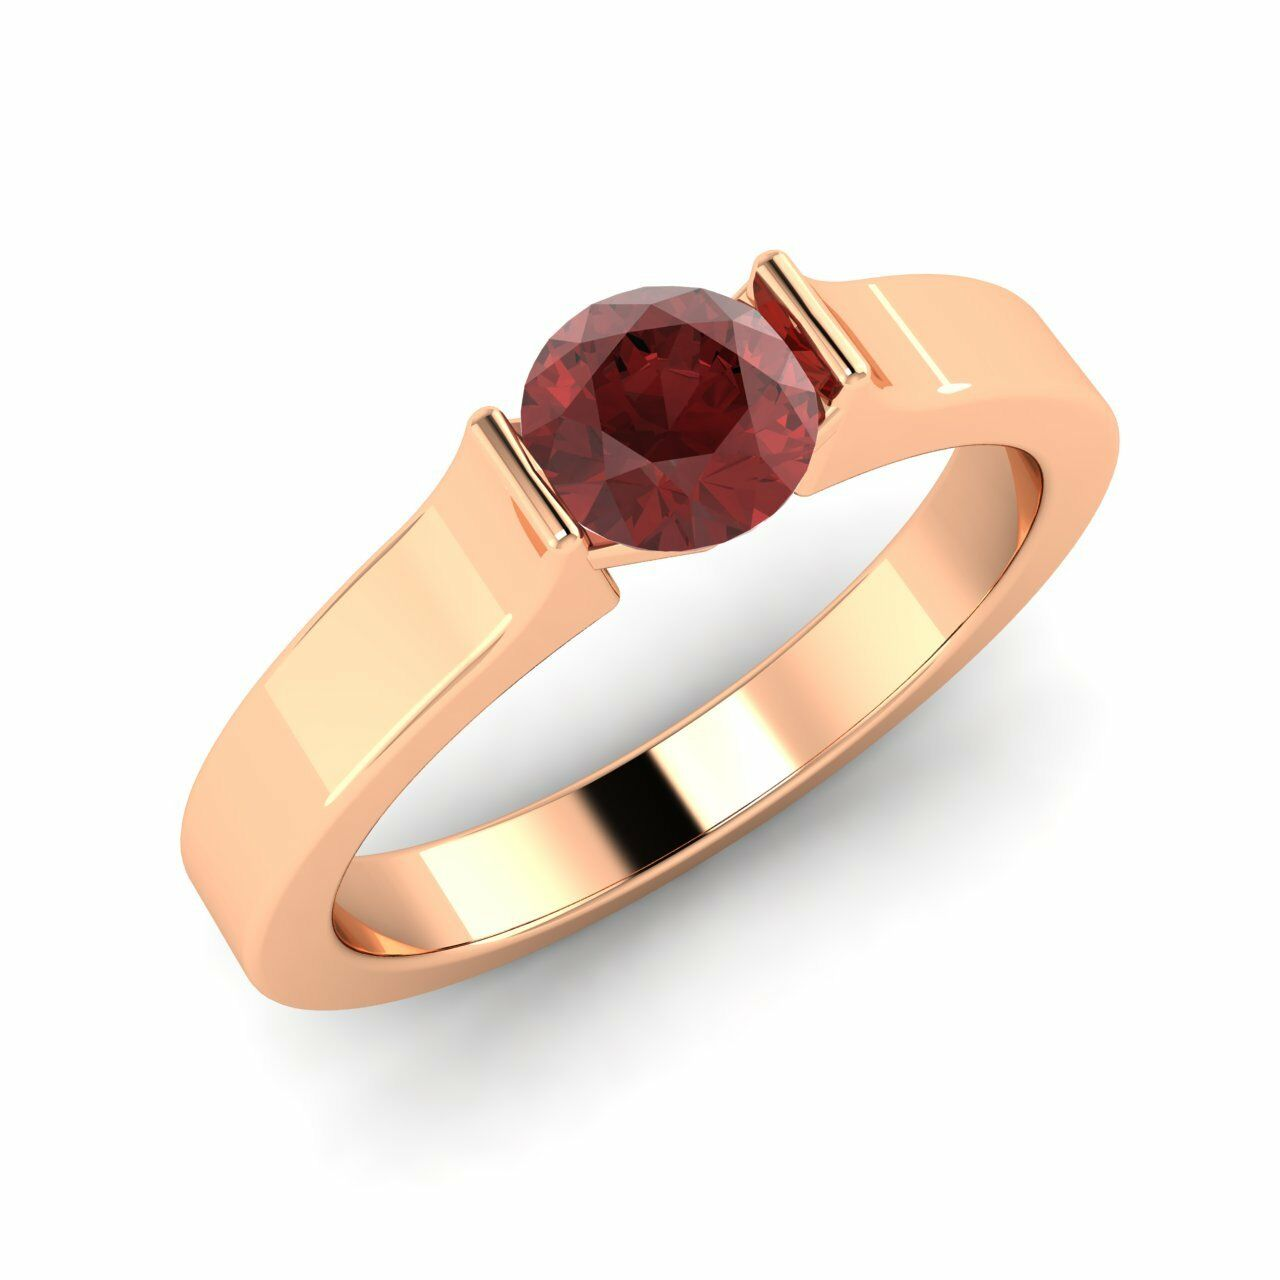 Certified 0.53 Cts Natural Garnet Solitaire Engagement Ring In 14K pink gold